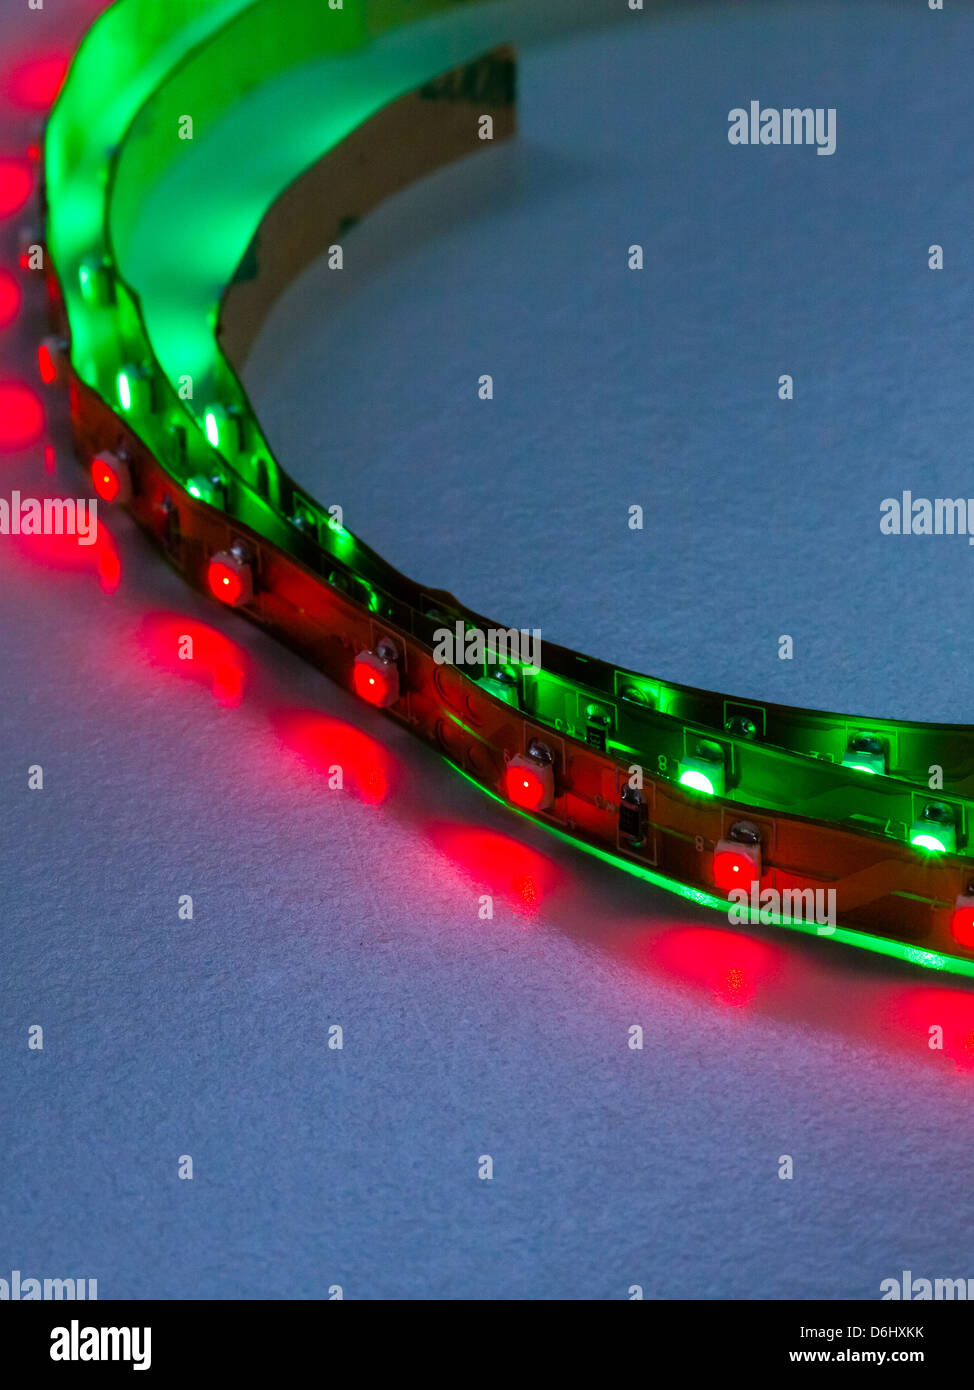 Diode Lighting Close Up Of High Intensity Led Lighting Strips Illuminated With